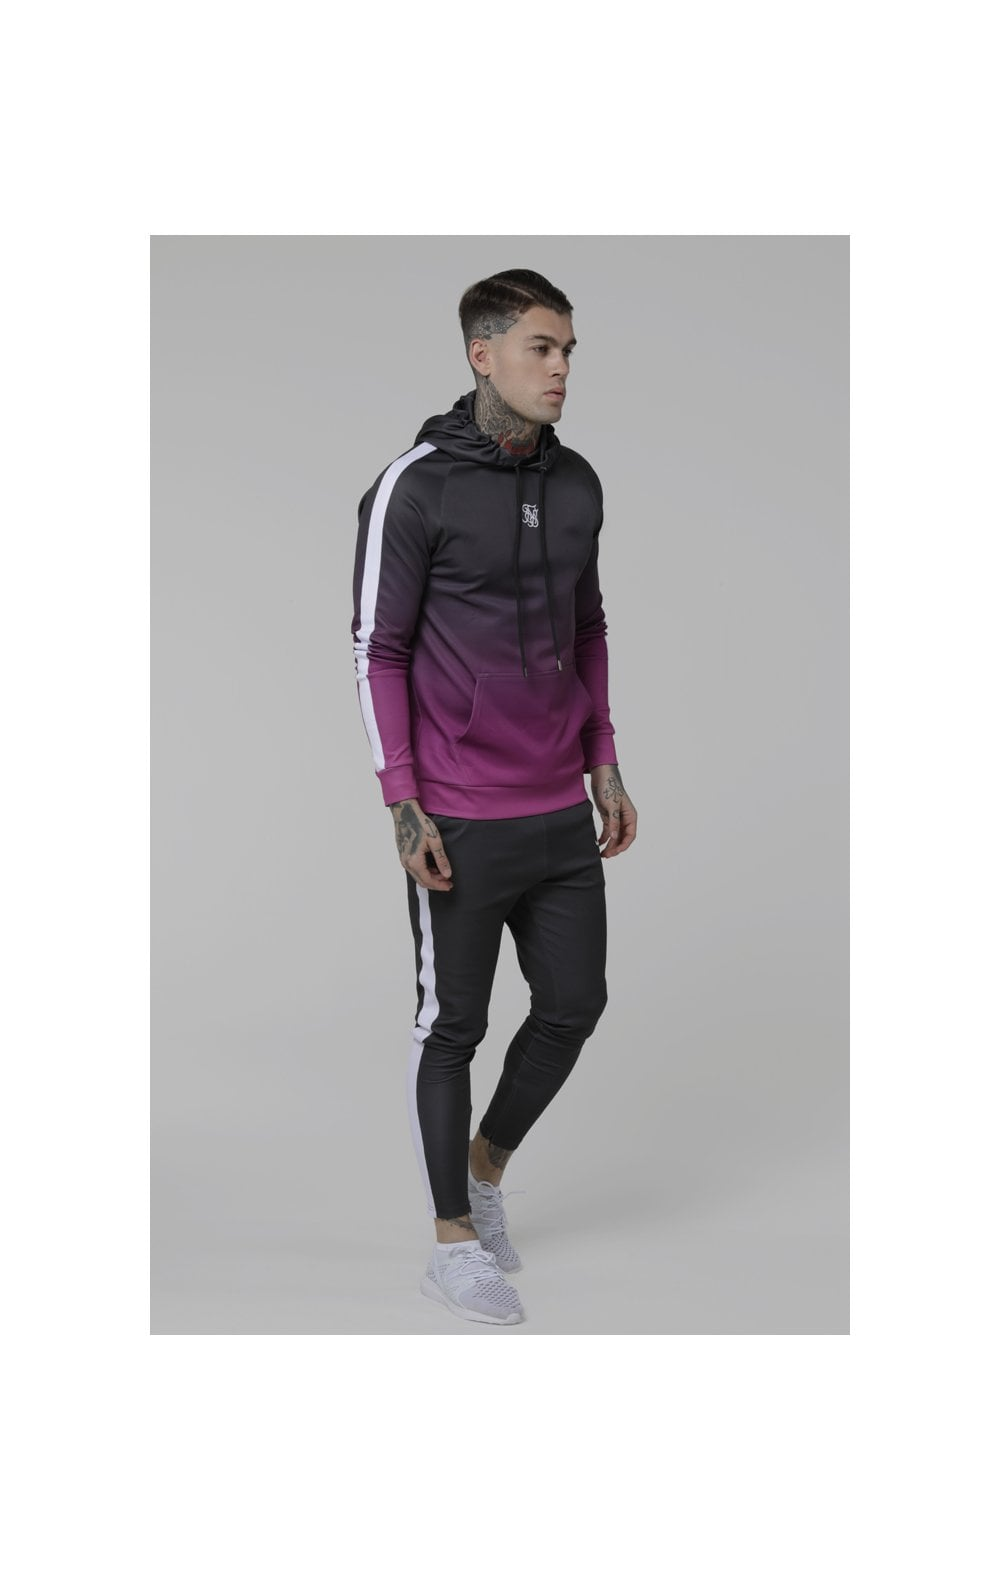 Load image into Gallery viewer, SikSilk Vapour Fade Overhead Hoodie - Grey & Pink (1)